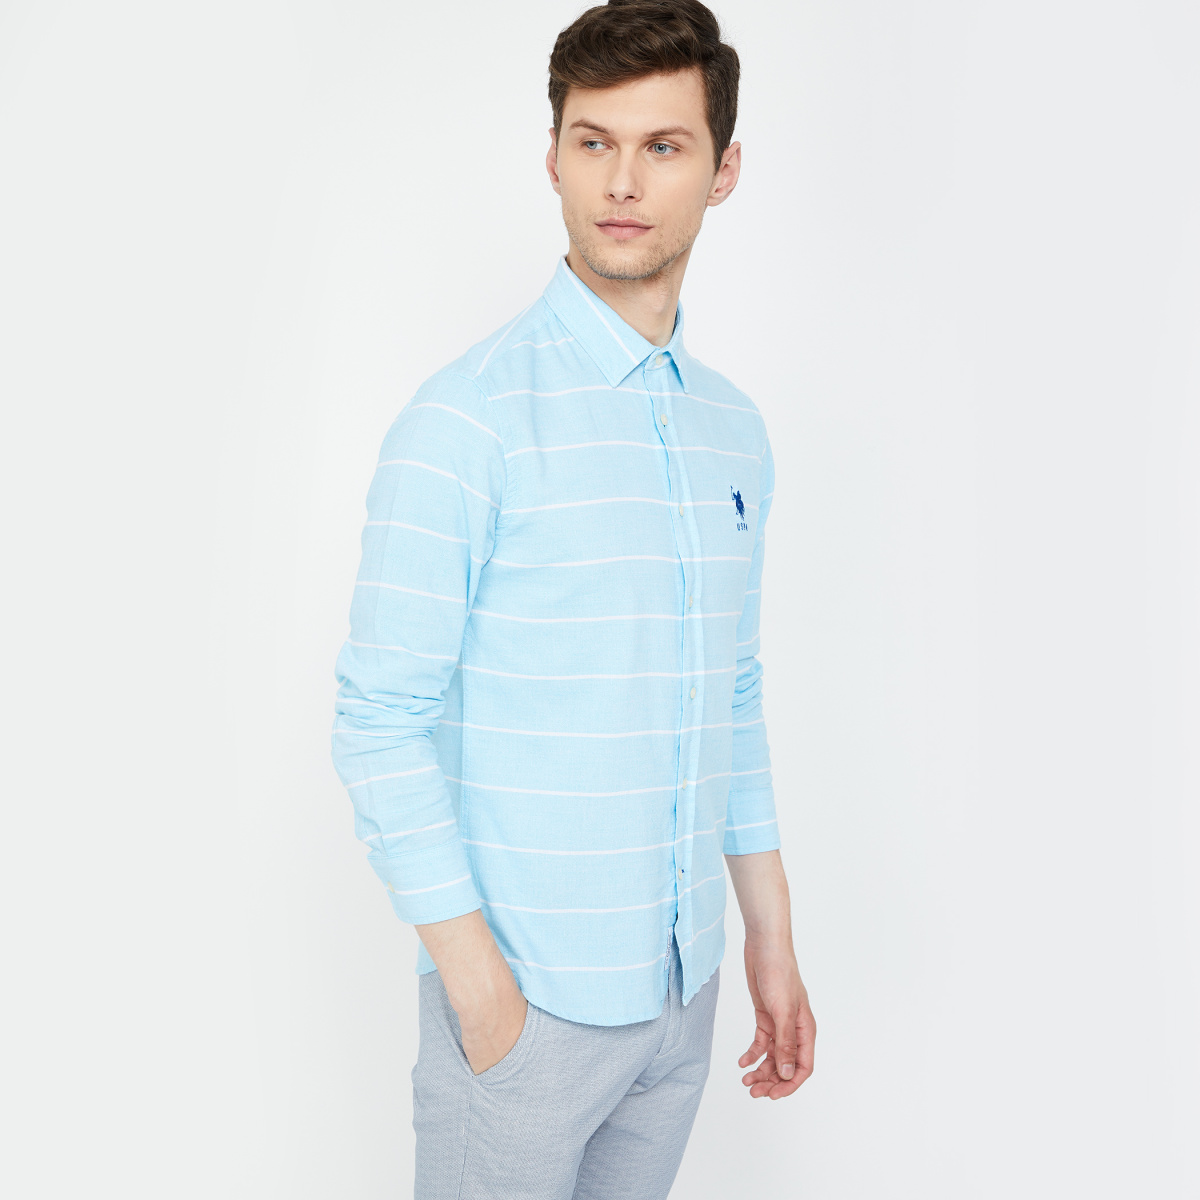 U.S. POLO ASSN. Striped Regular Fit Casual Shirt